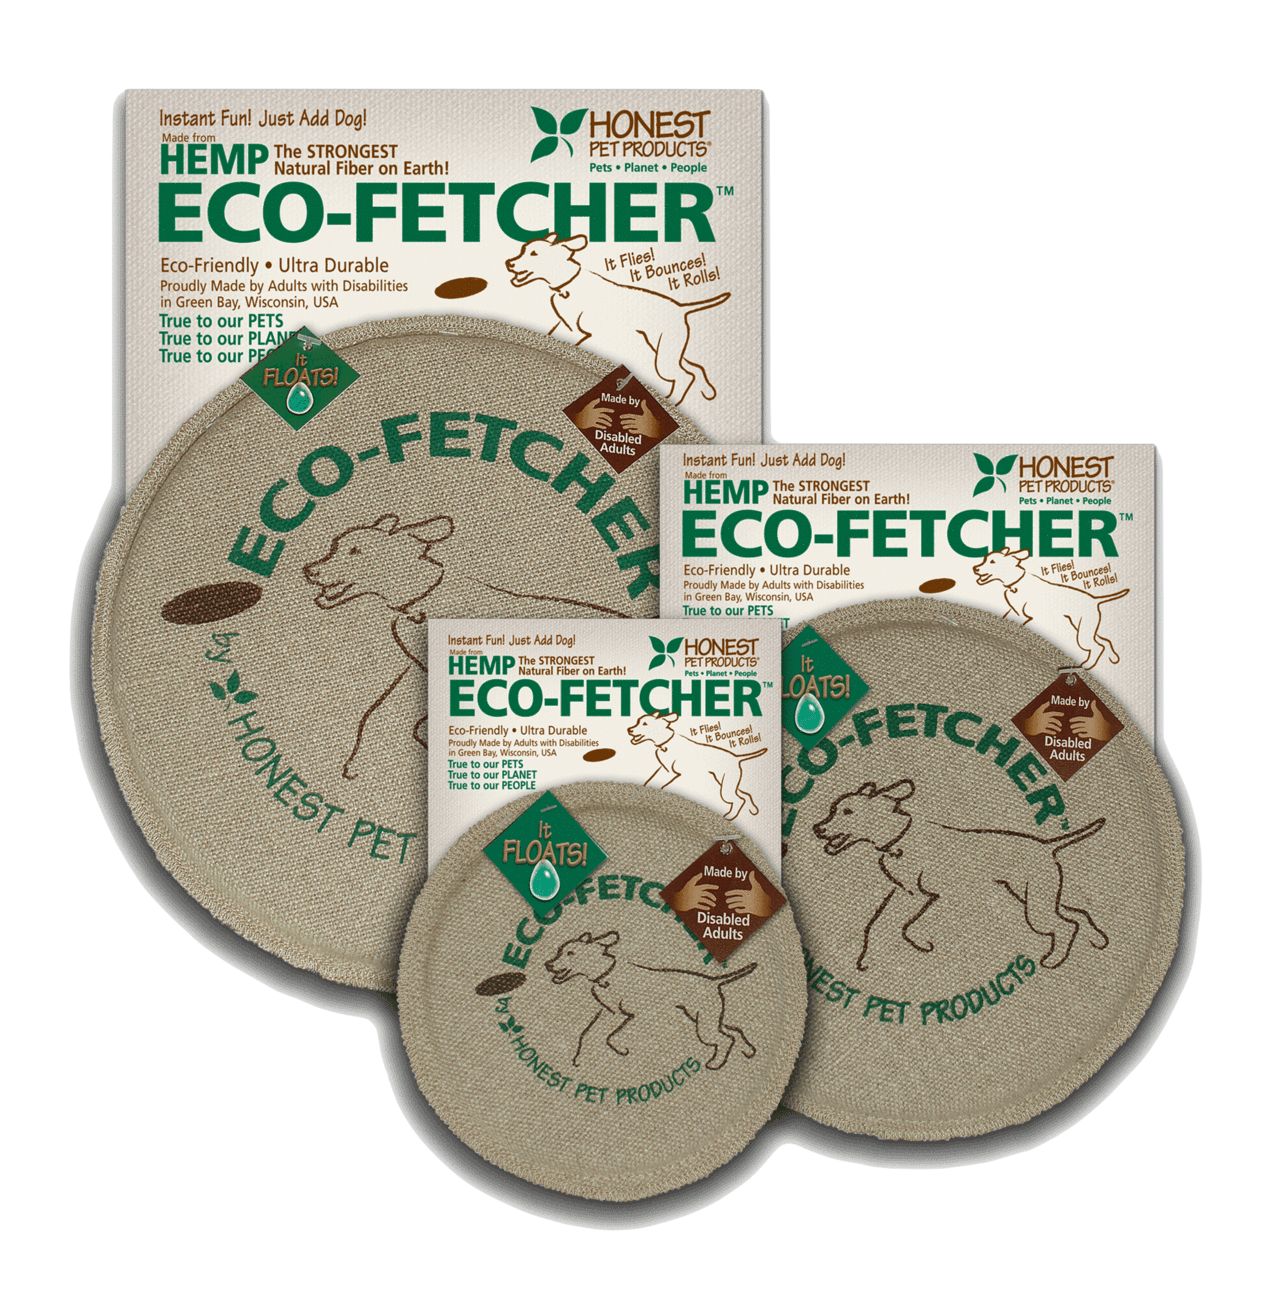 Eco-Fetcher - The Eco-Fetcher, a Frisbee manufactured from 100% hemp, is another great gift for an active pup.